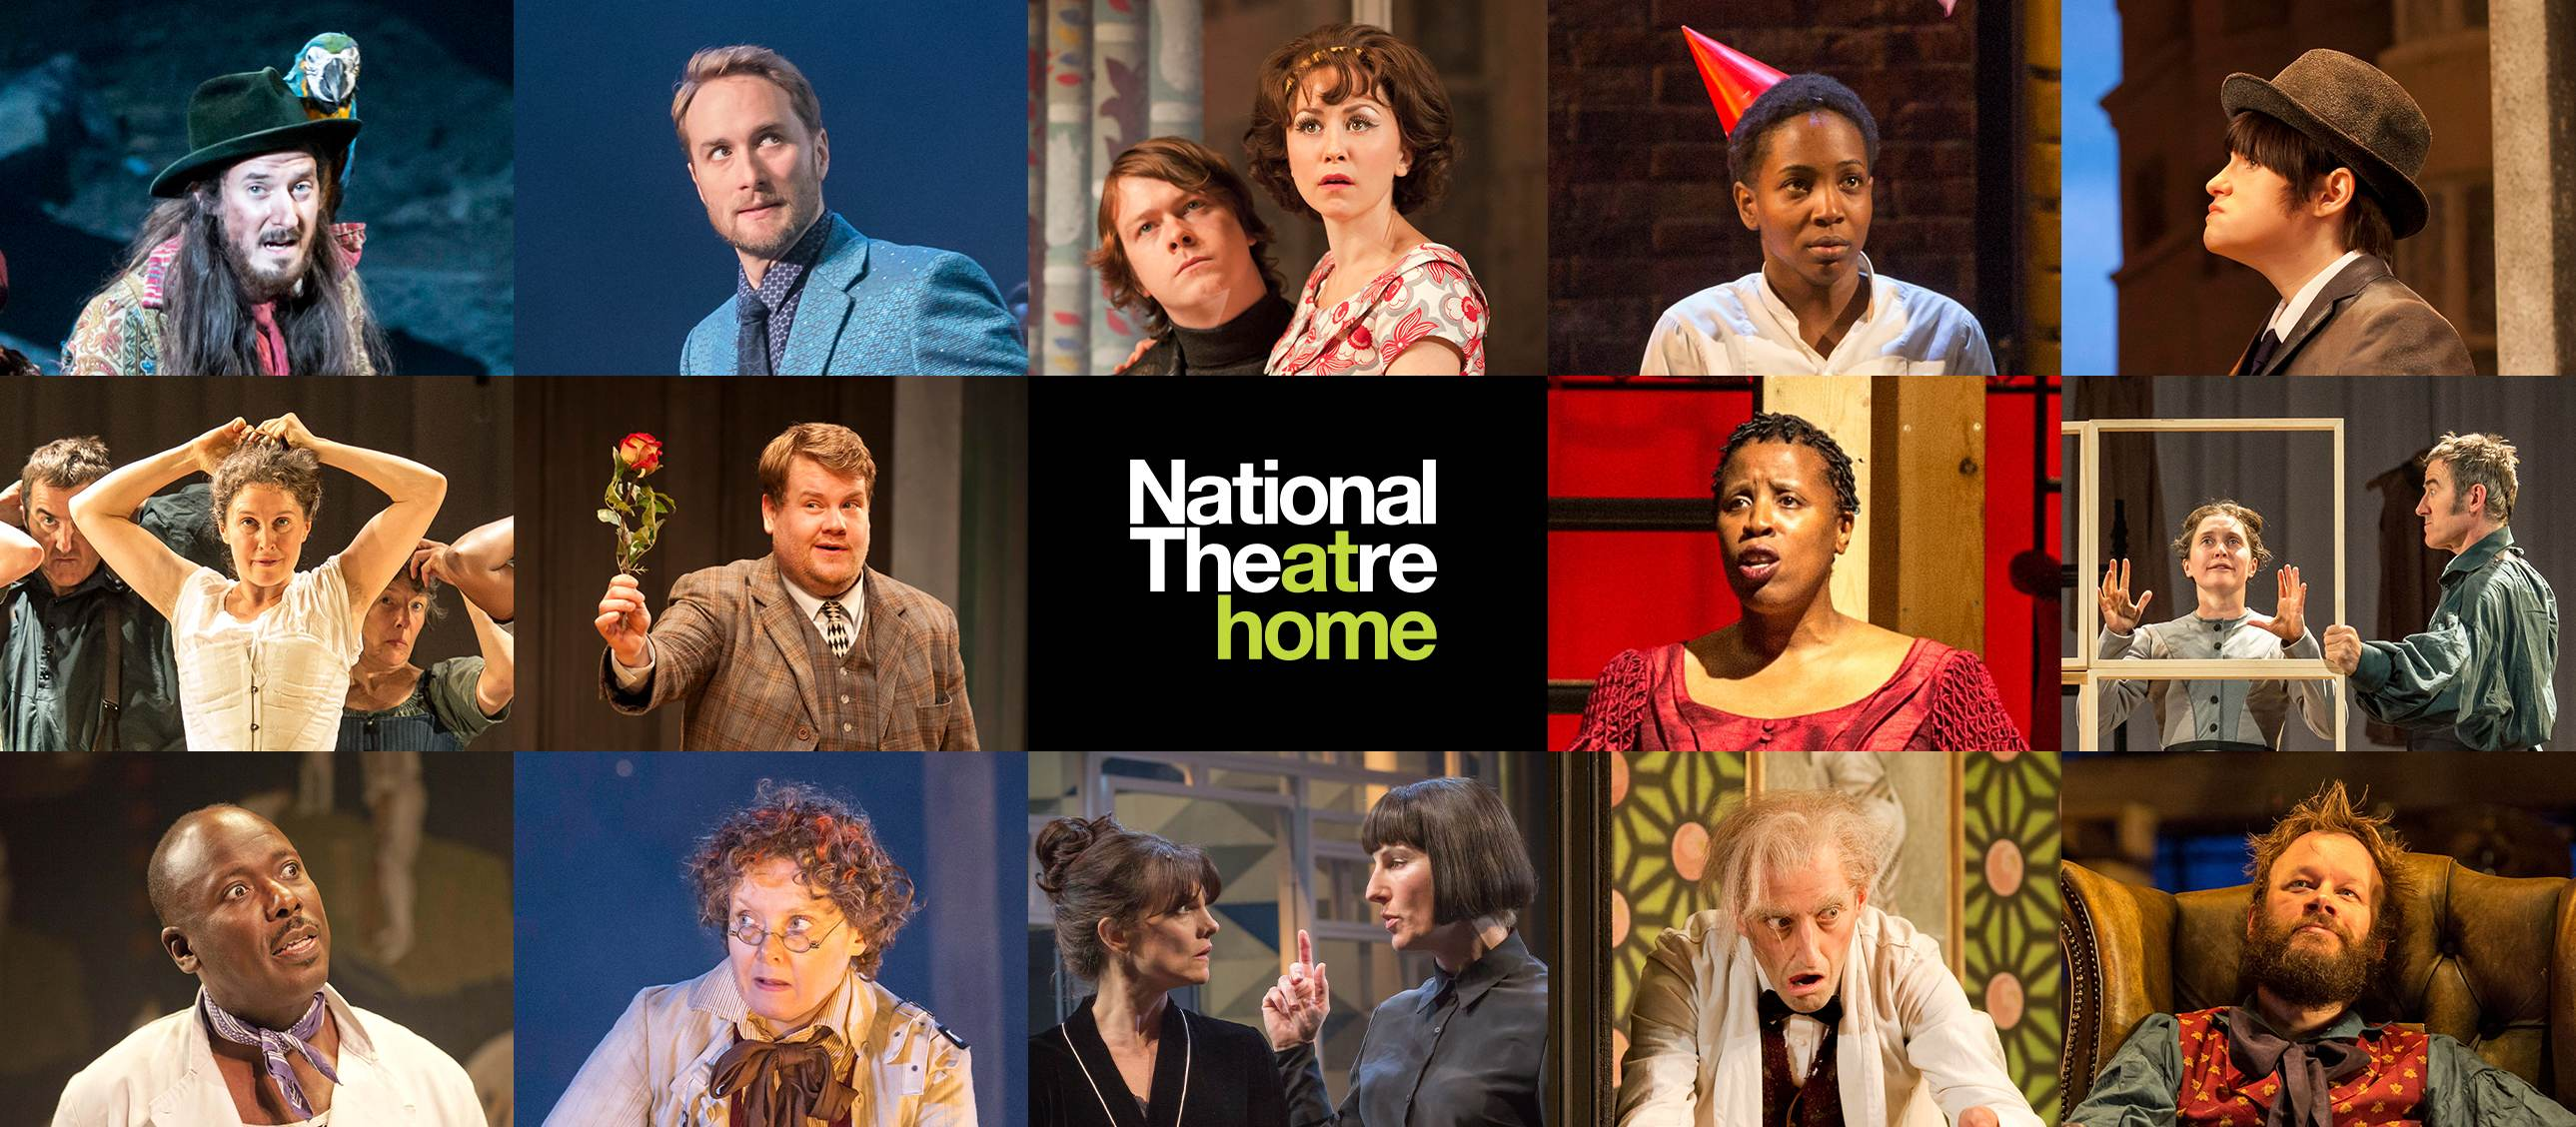 National Theatre at Home: composite poster with several images from NT Live productions, including Treasure Island, Jane Eyre, and more.